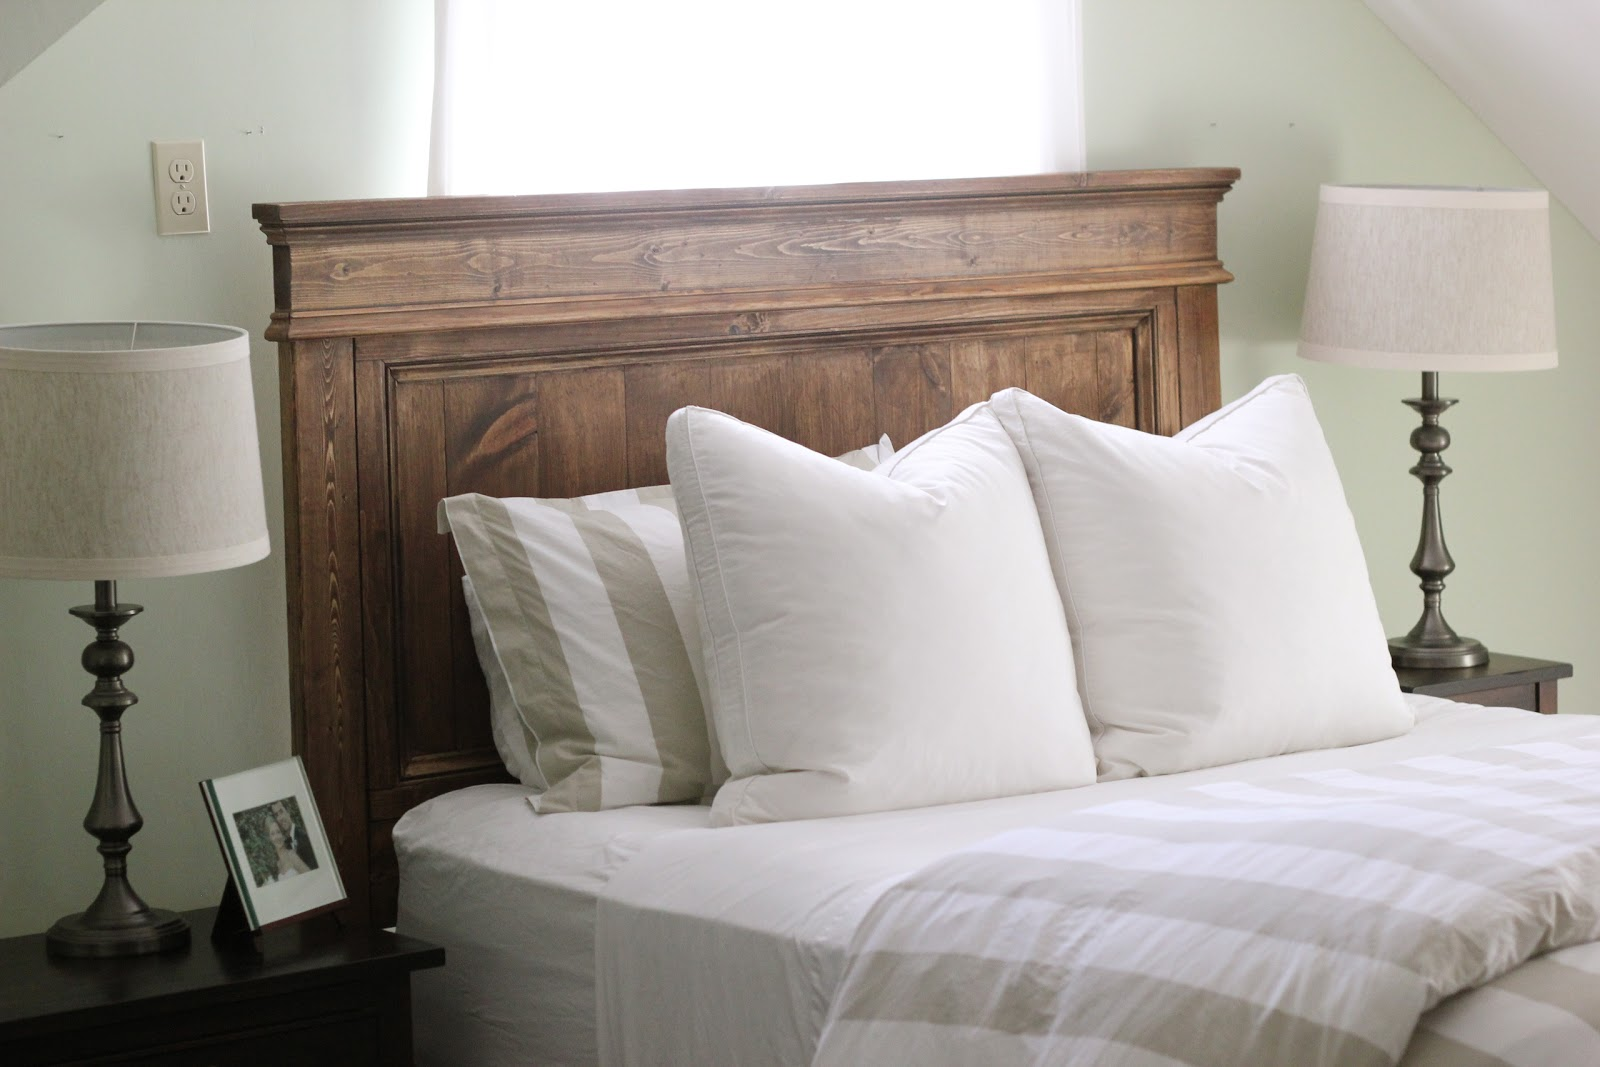 Jenny steffens hobick we built a bed diy wooden headboard - Testiere letto ikea ...